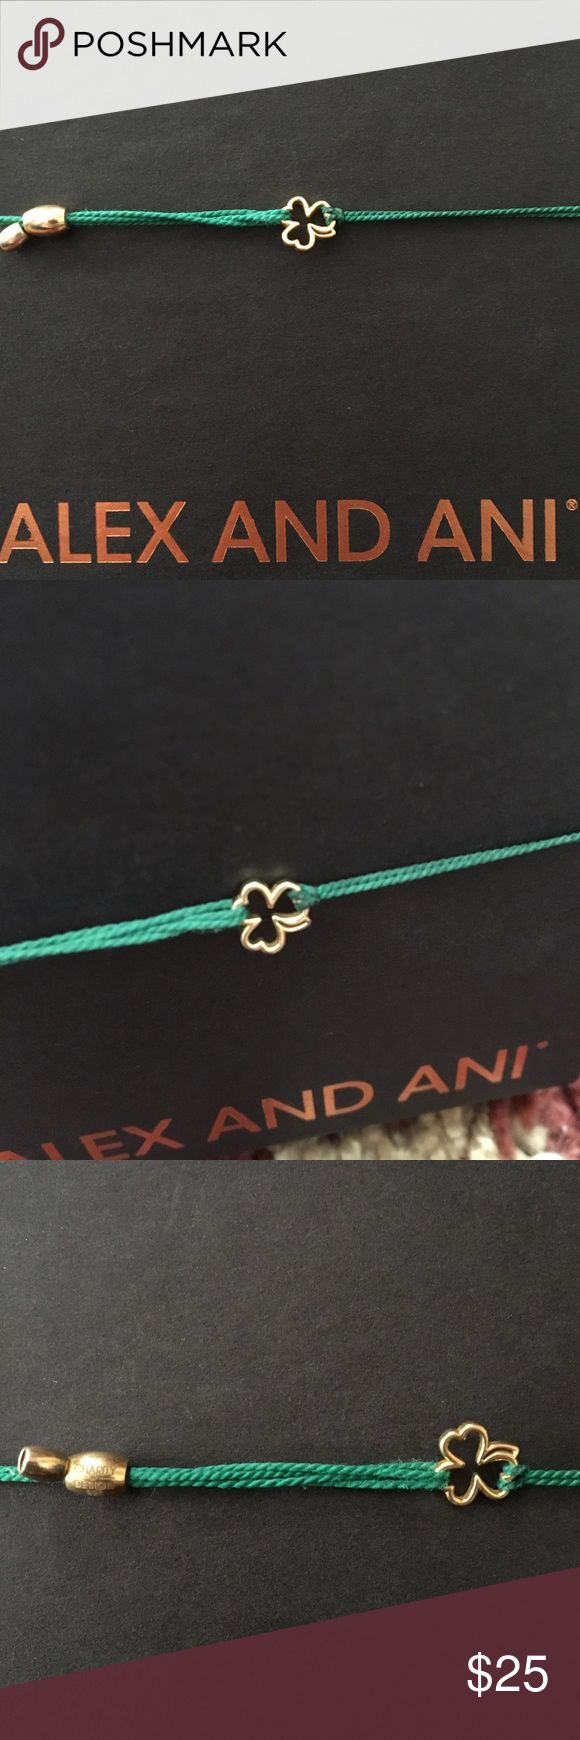 Alex and Ani Pull Cord Shamrock Just in time for St. Patrick's Day! Alex and Ani pull cord gold shamrock bracelet. 14 karat gold shamrock on a green silk cord. Was released for st. Patrick's Day last year through the Charity by Design collection. Safe to wear in the shower. Purchased at the flagship Alex and Ani store! Alex & Ani Jewelry Bracelets